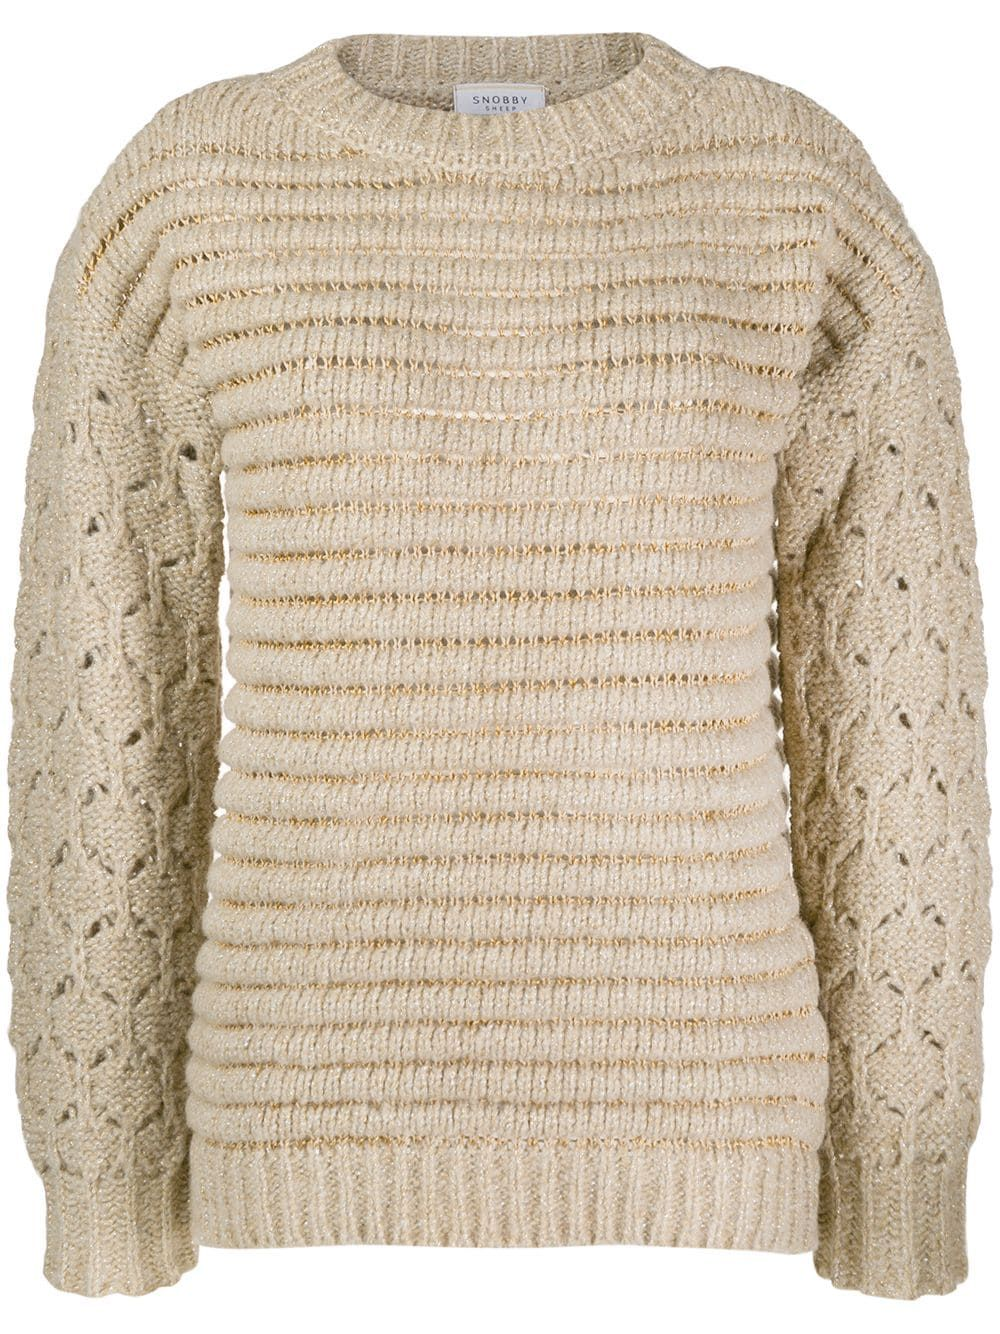 Snobby Sheep chunky knit jumper - NEUTRALS #chunkyknitjumper